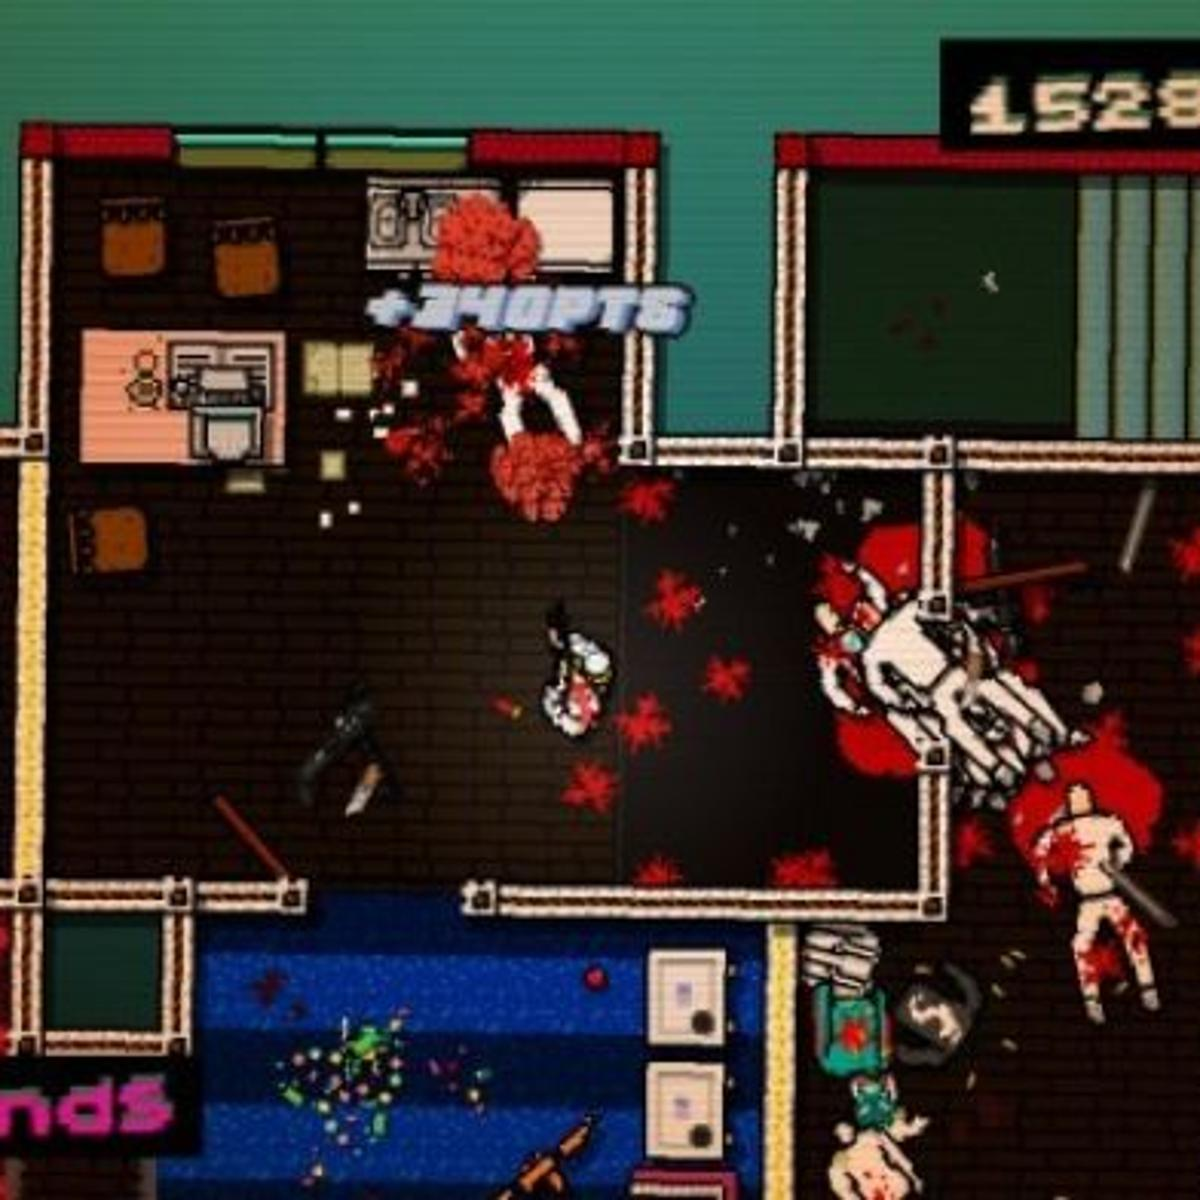 Game review: 'Hotline Miami' an addictive cocktail of blood and neon